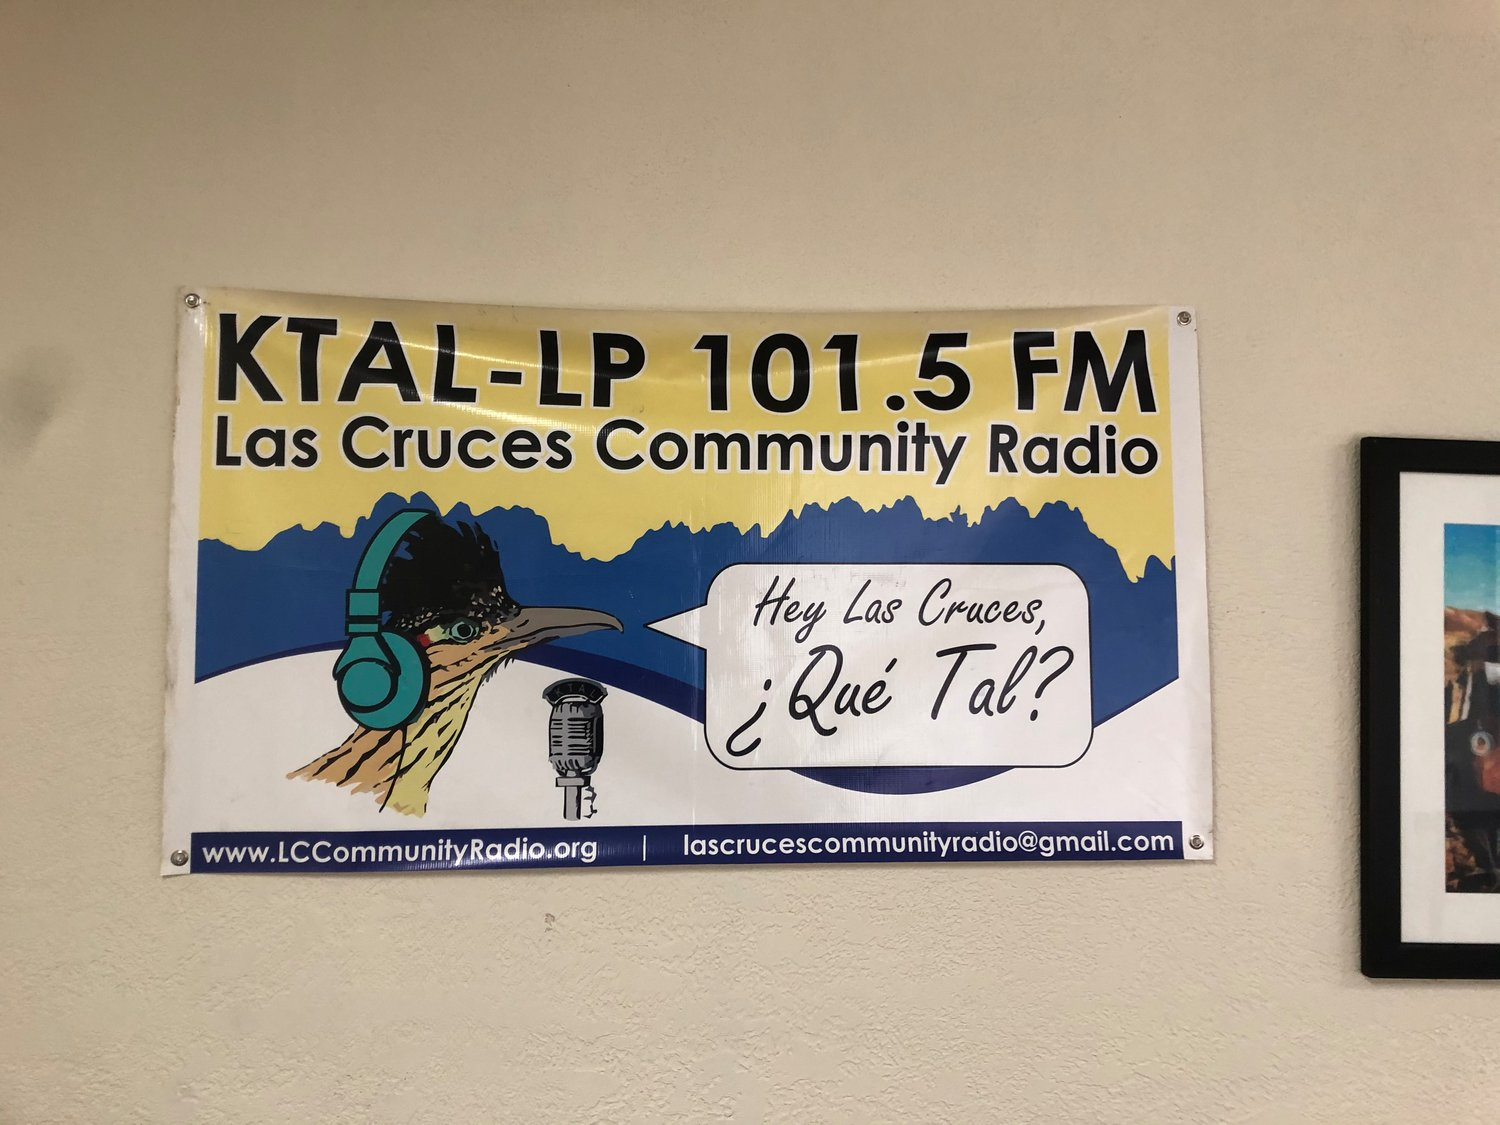 The KTAl-LP banner at the studio asking Las Cruces what's up (¿Qué Tal?).